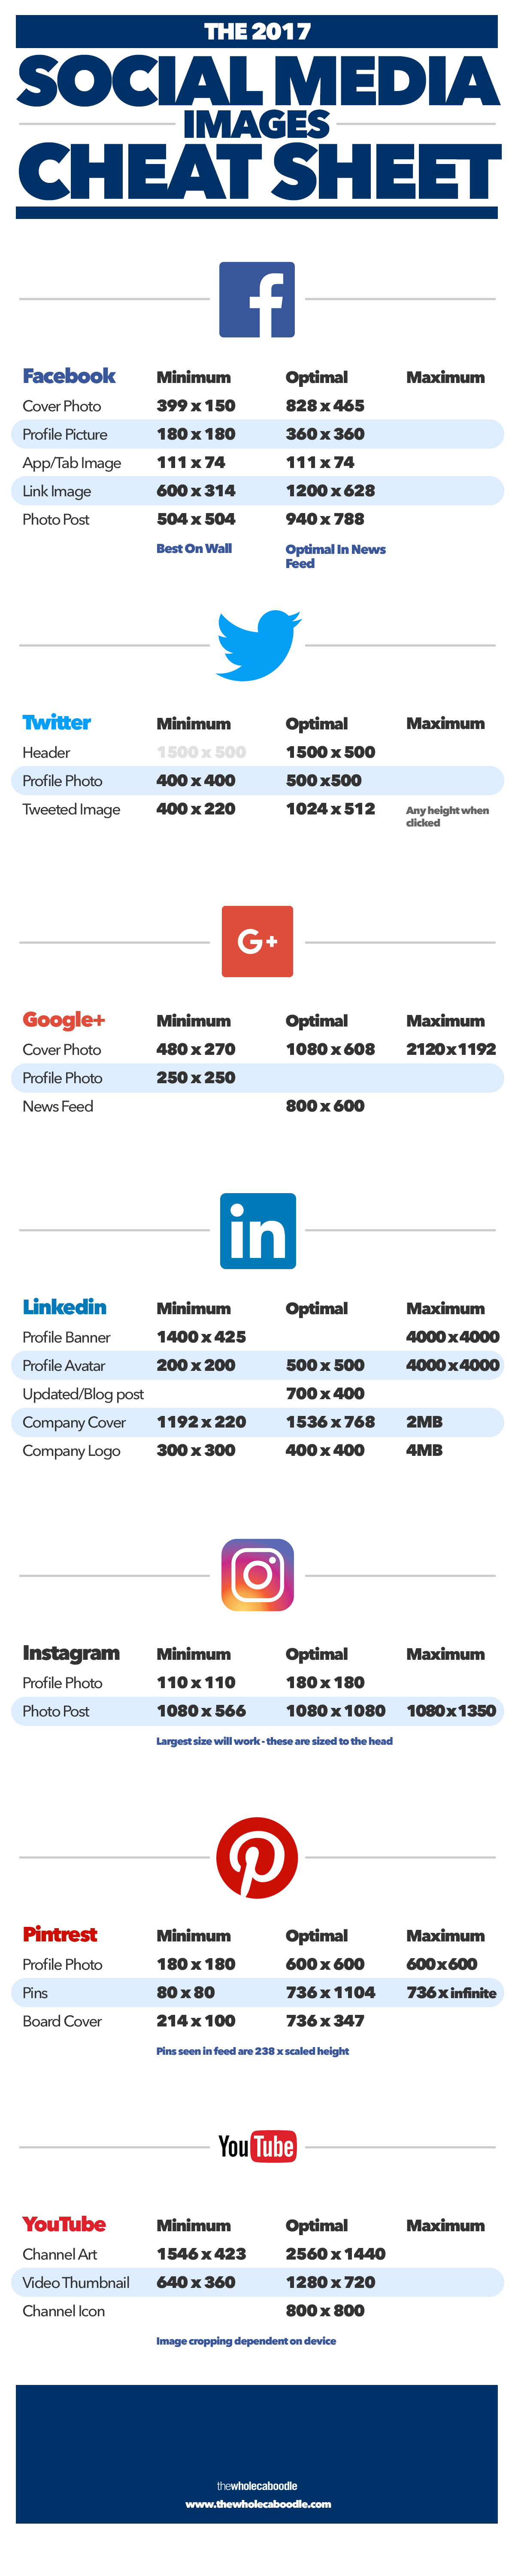 Social Media Image Cheat Sheet - Infographic